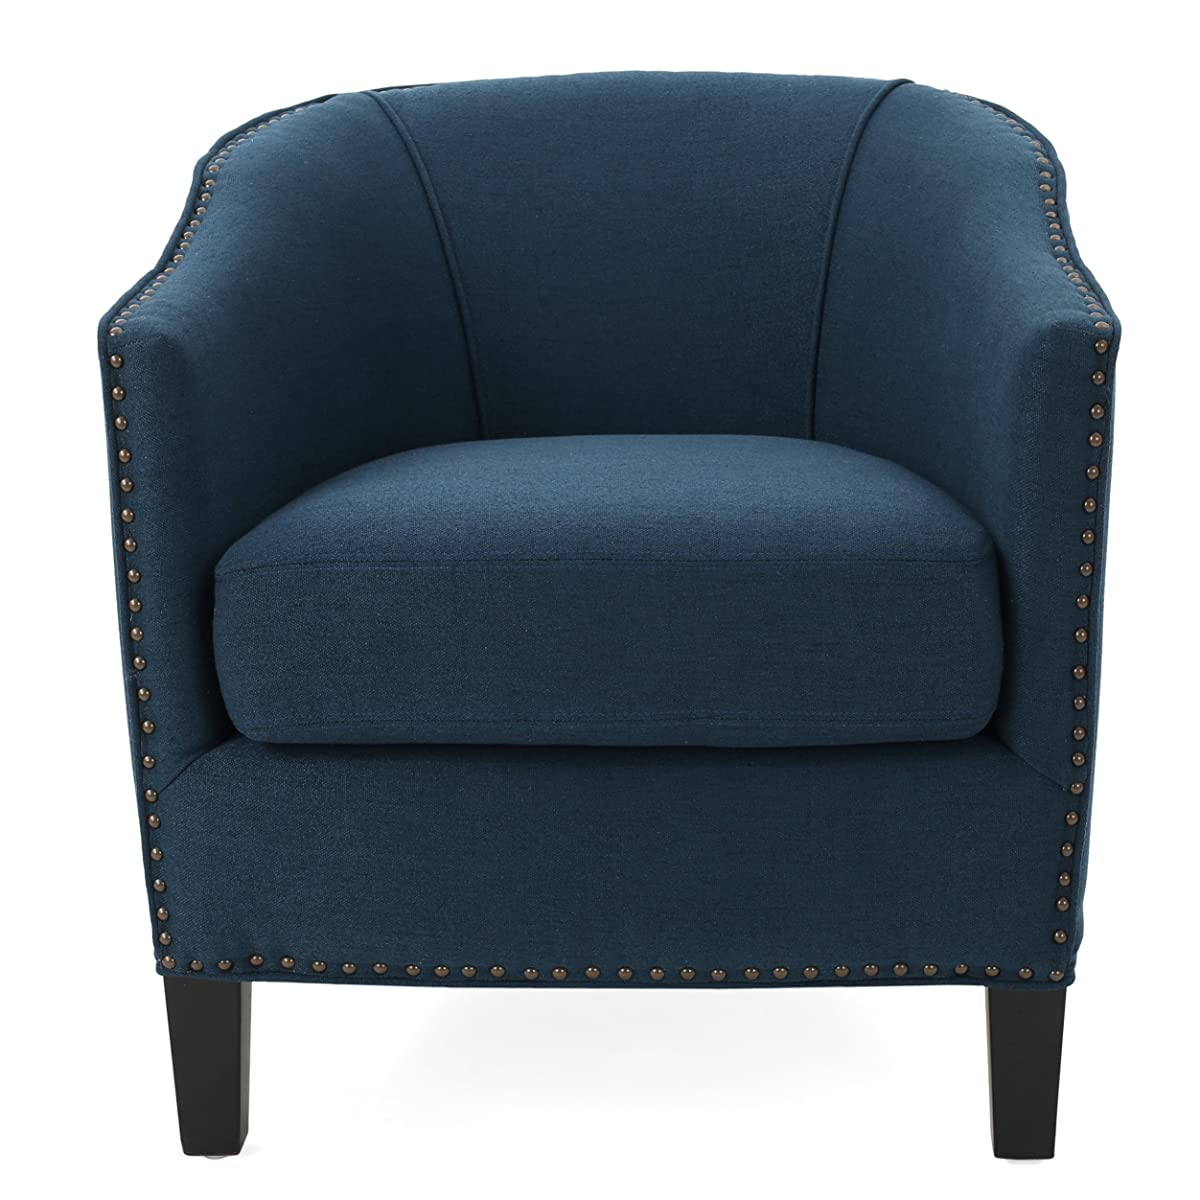 Jolivi | Fabric Club Chair with Studded Accents | in Deep Blue